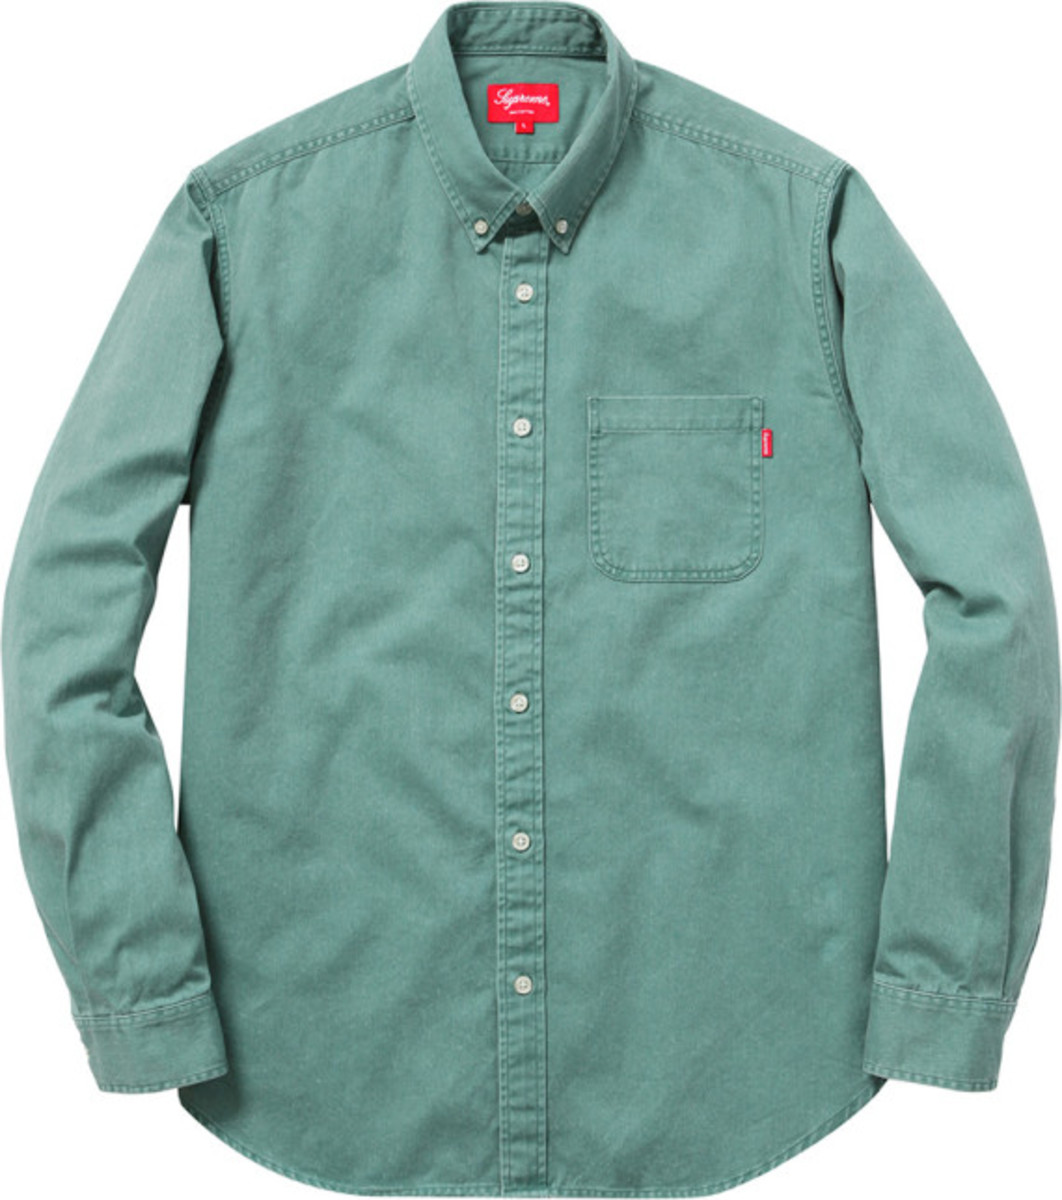 supreme-spring-summer-2015-apparel-collection-04